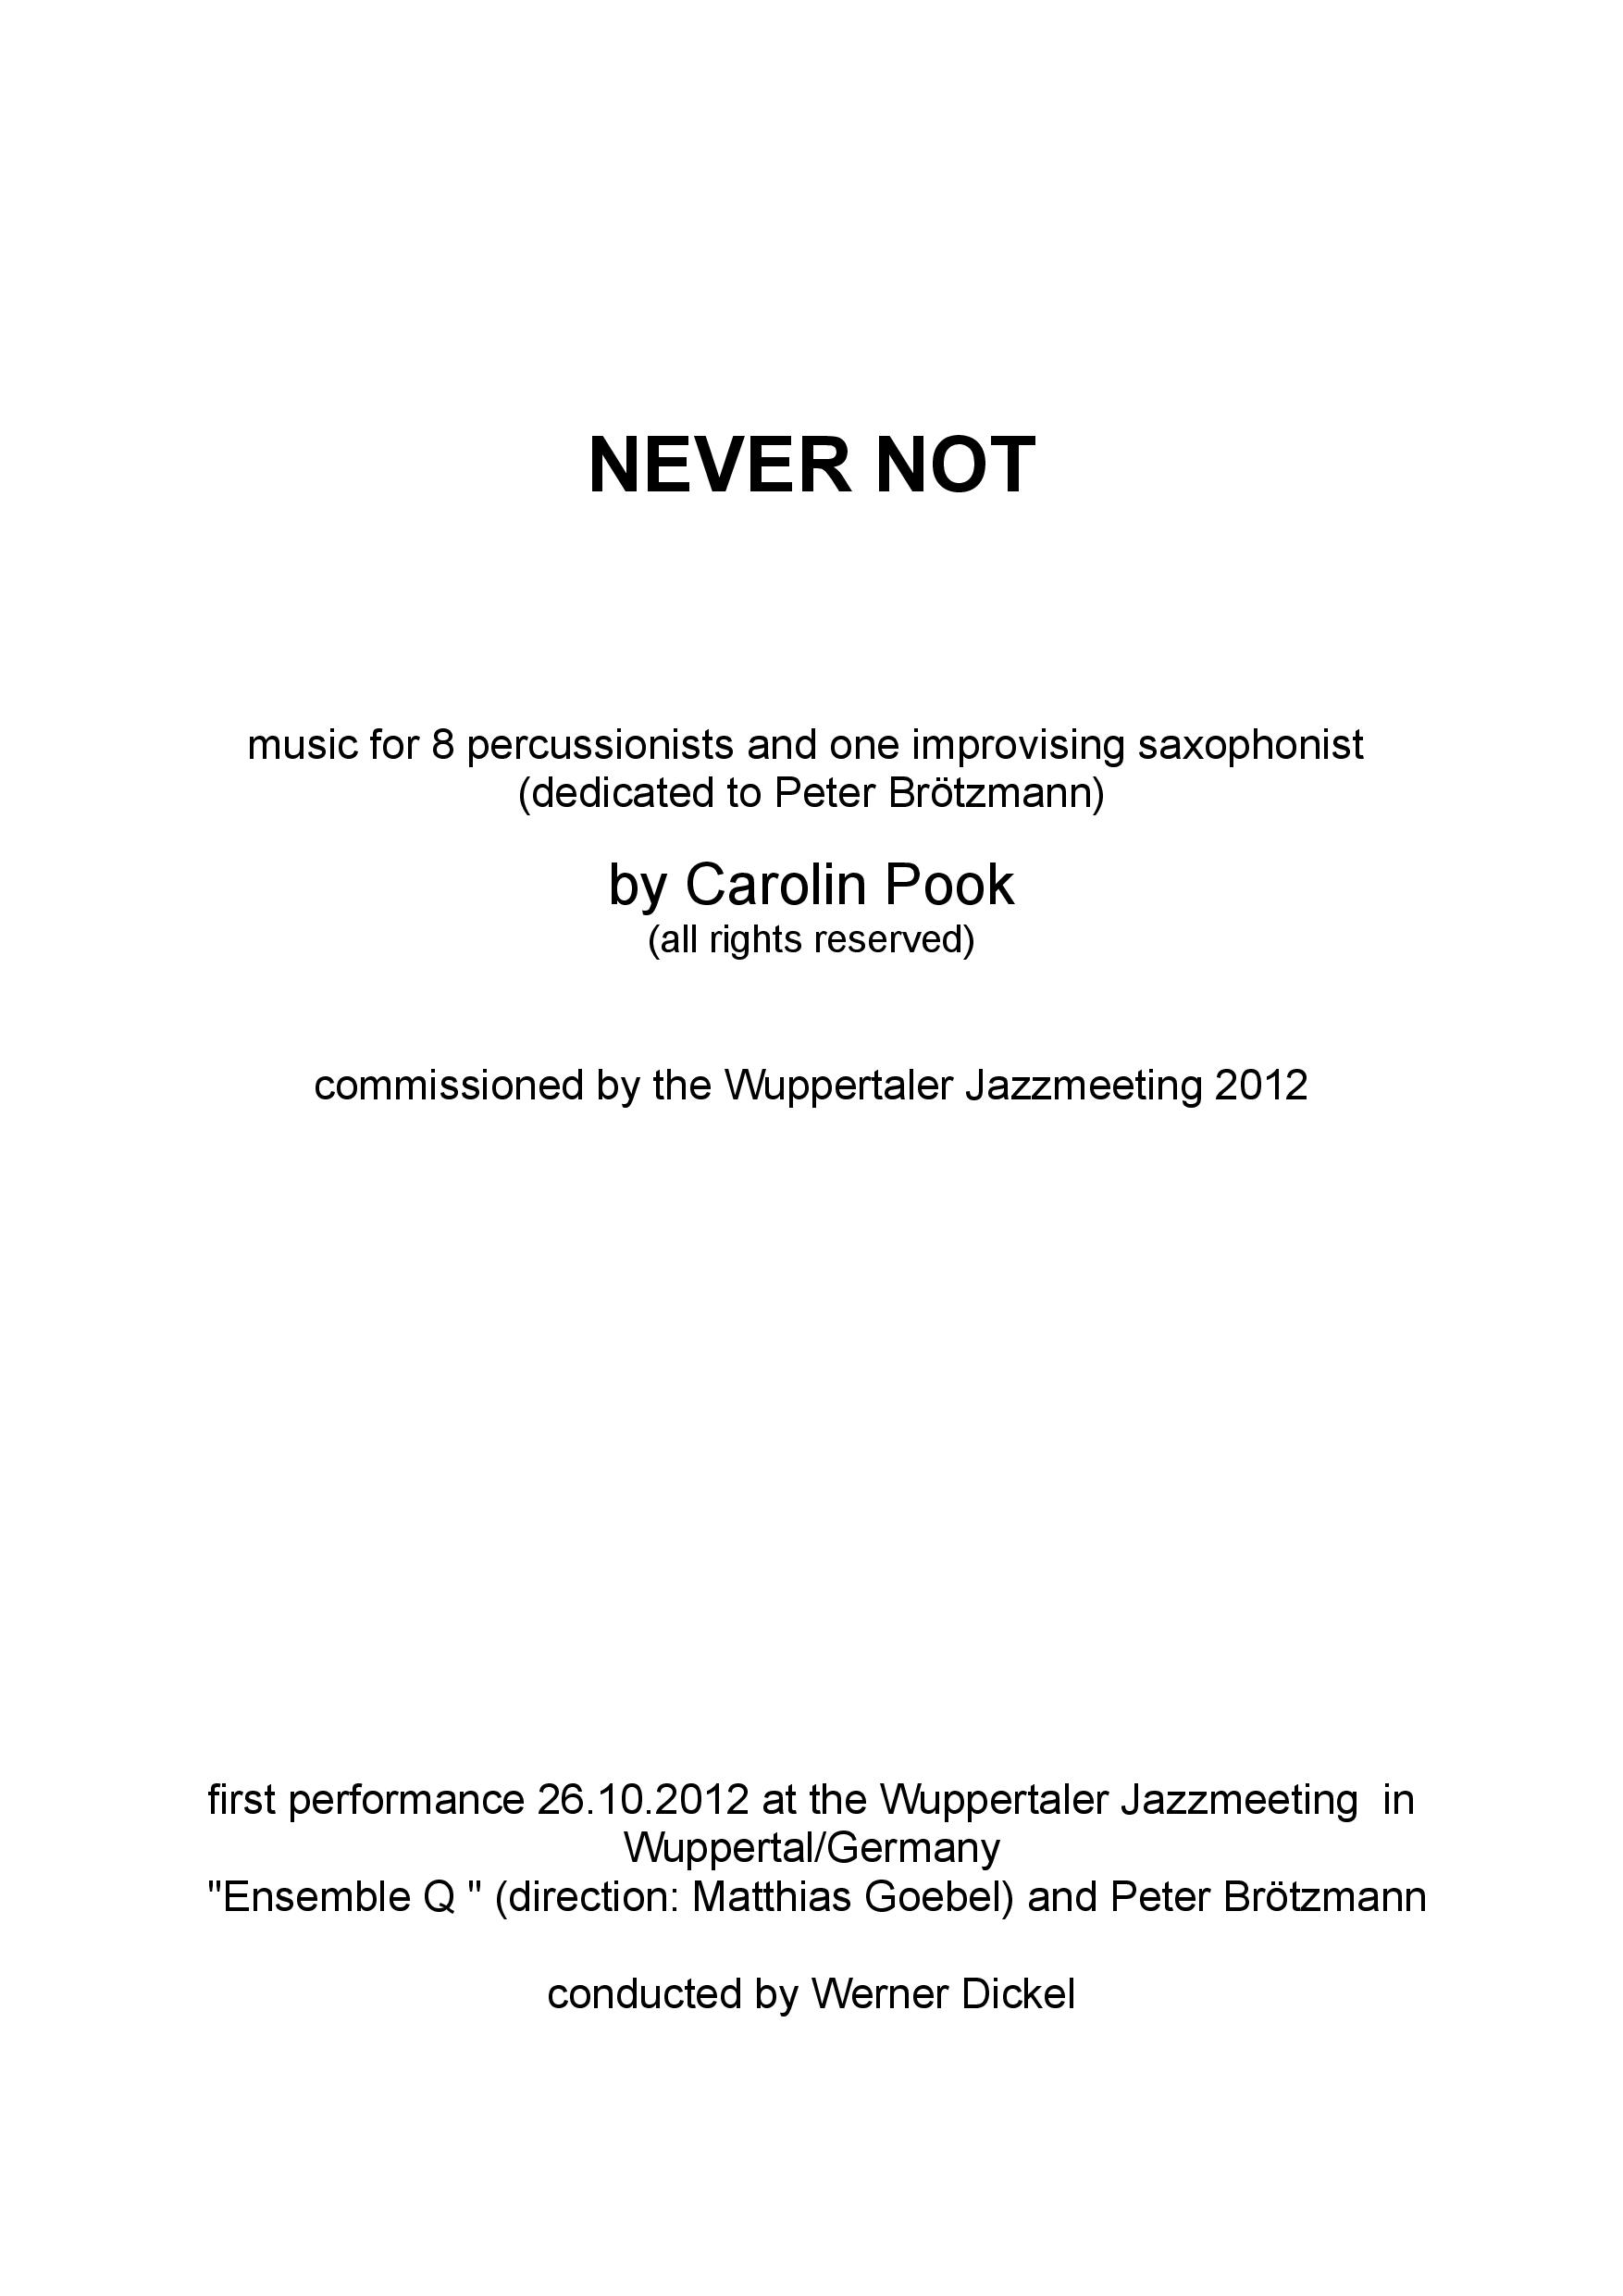 NEVER NOT - Partitur A3-page-001.jpg